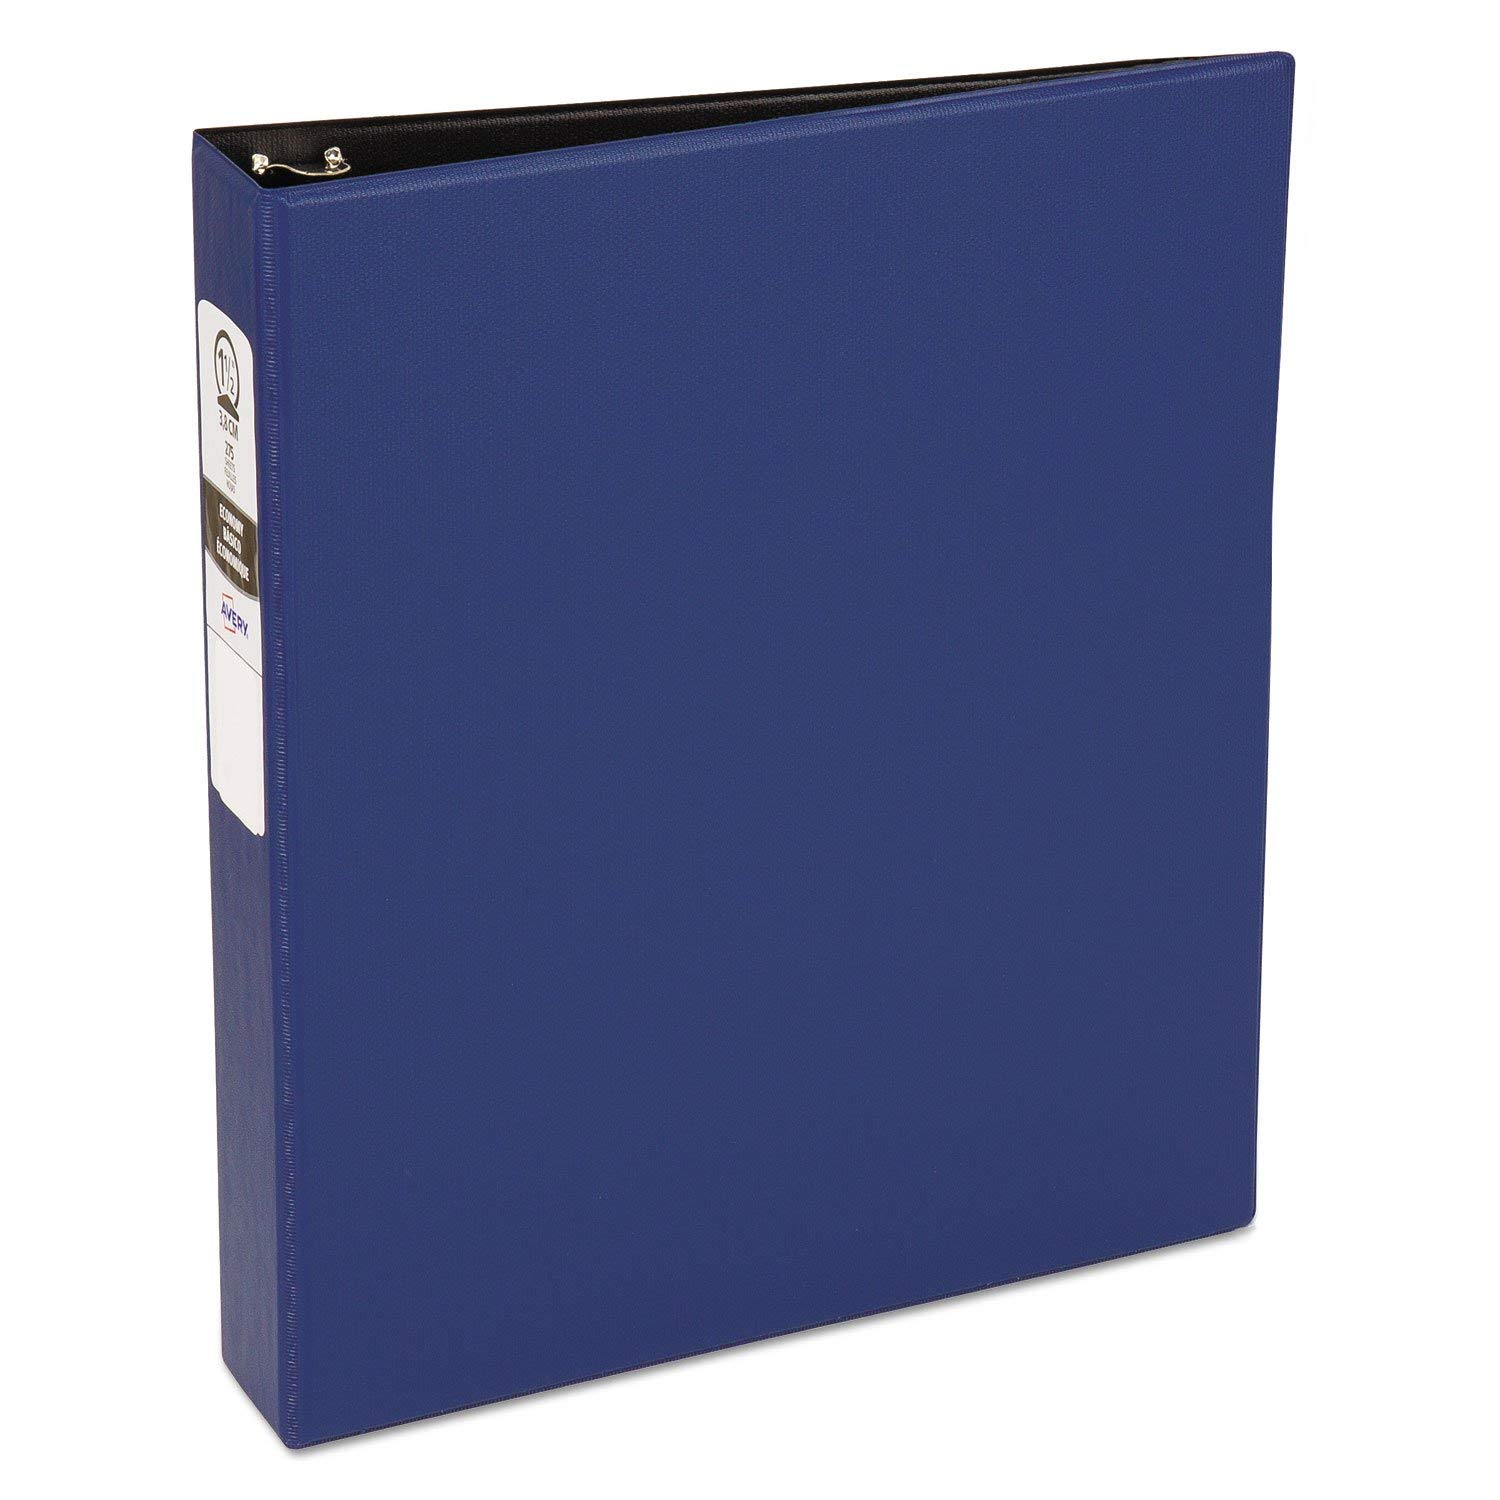 """Economy Non-View Binder with Round Rings, 11 X 8 1/2, 1 1/2"""""""" Capacity, Blue"""